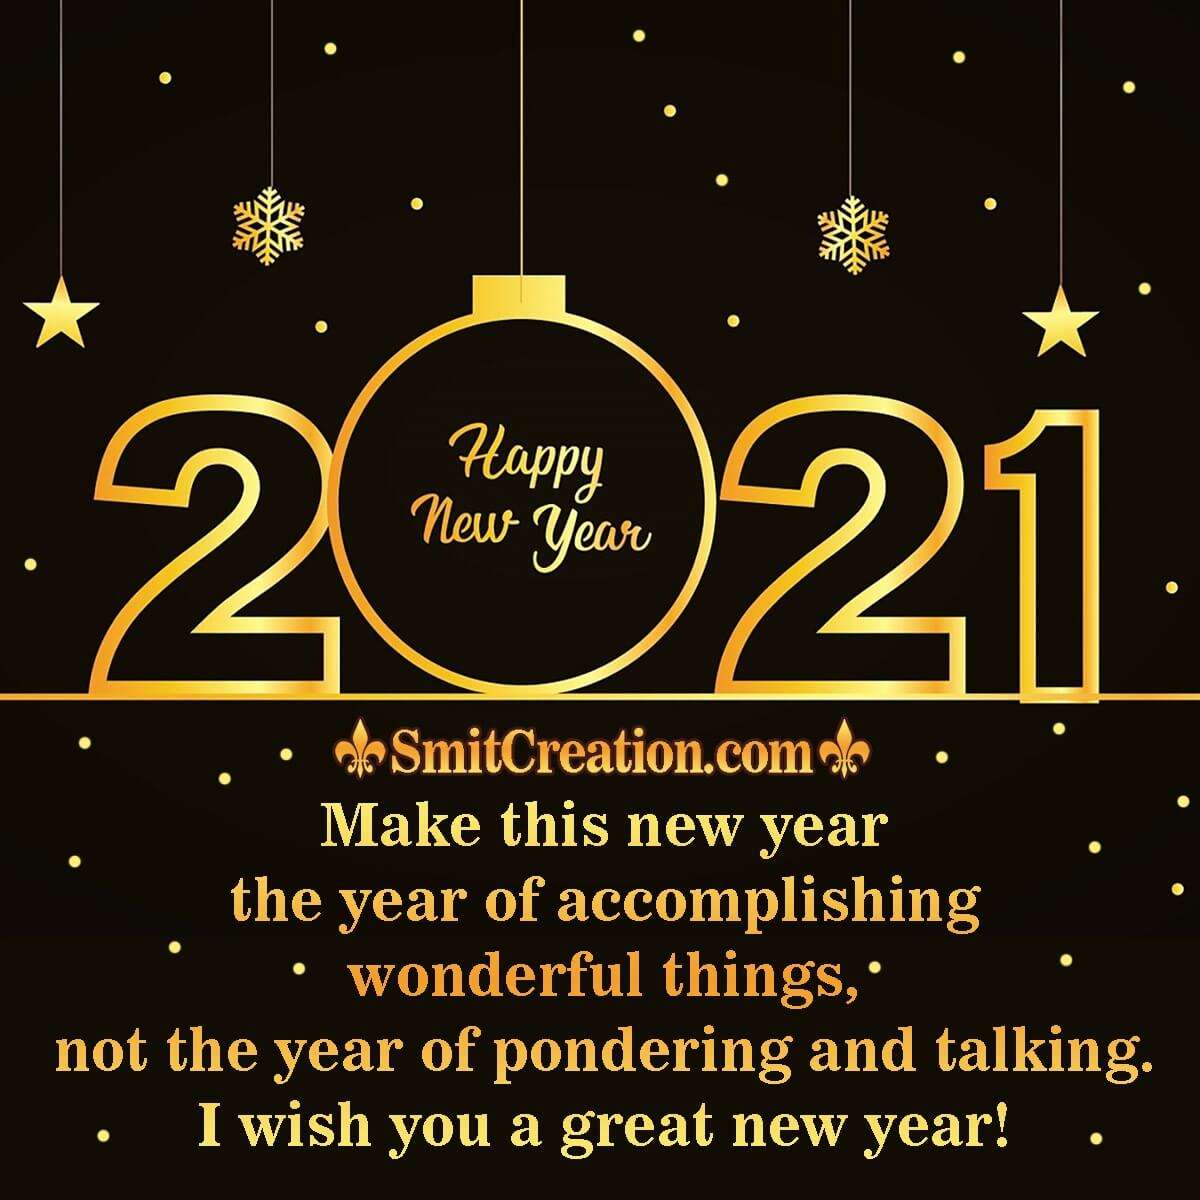 A Great Happy New Year 2021